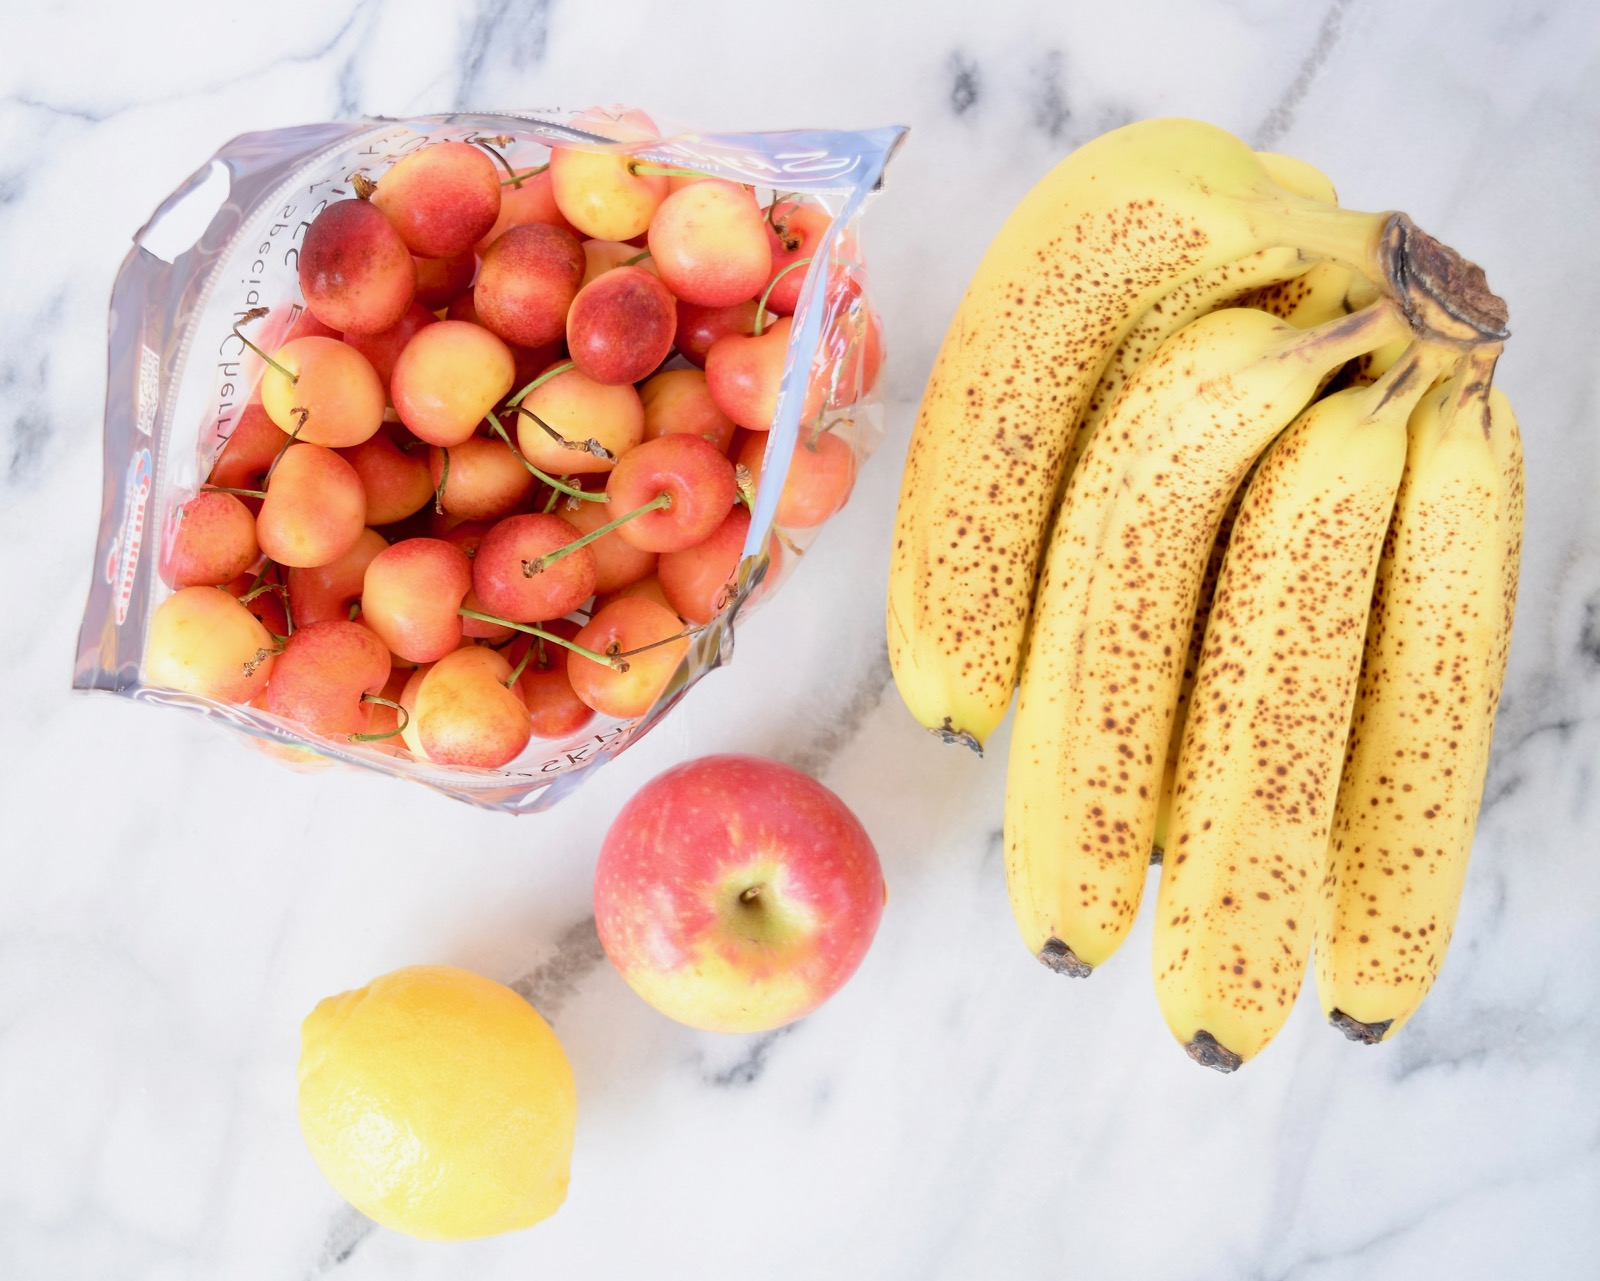 Fruit to buy at the grocery store